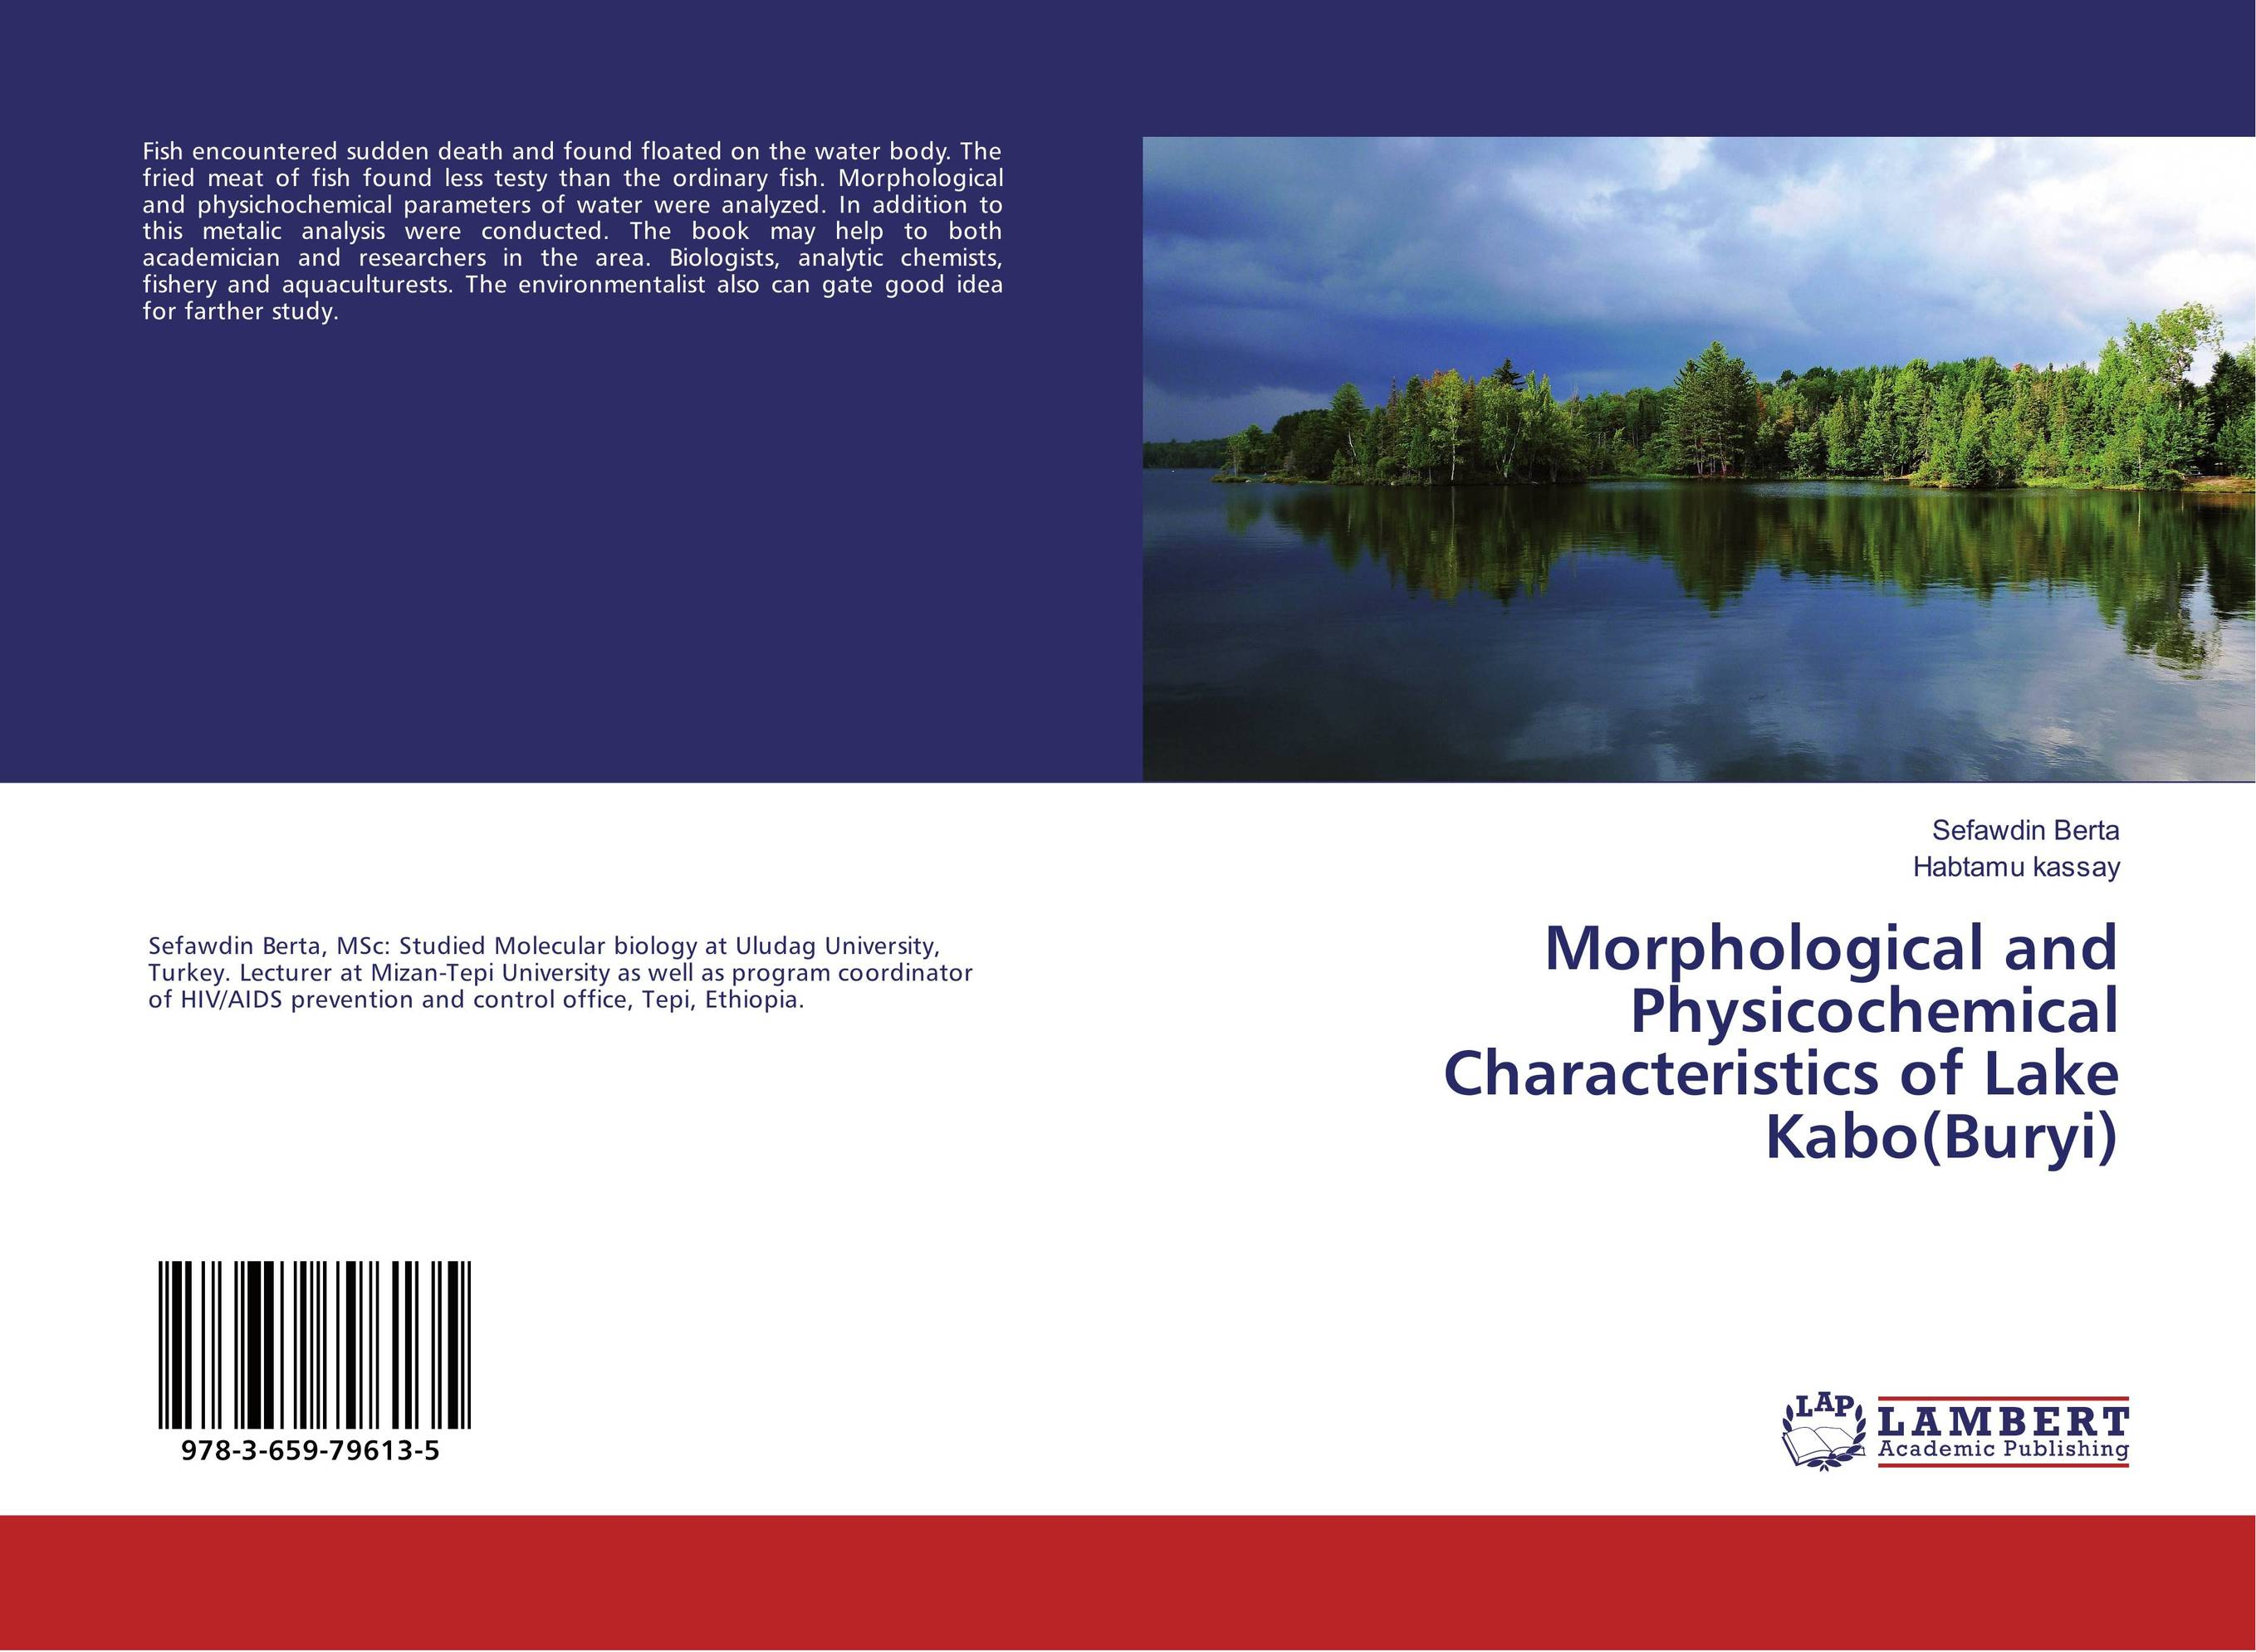 Morphological and Physicochemical Characteristics of Lake Kabo(Buryi) found in brooklyn